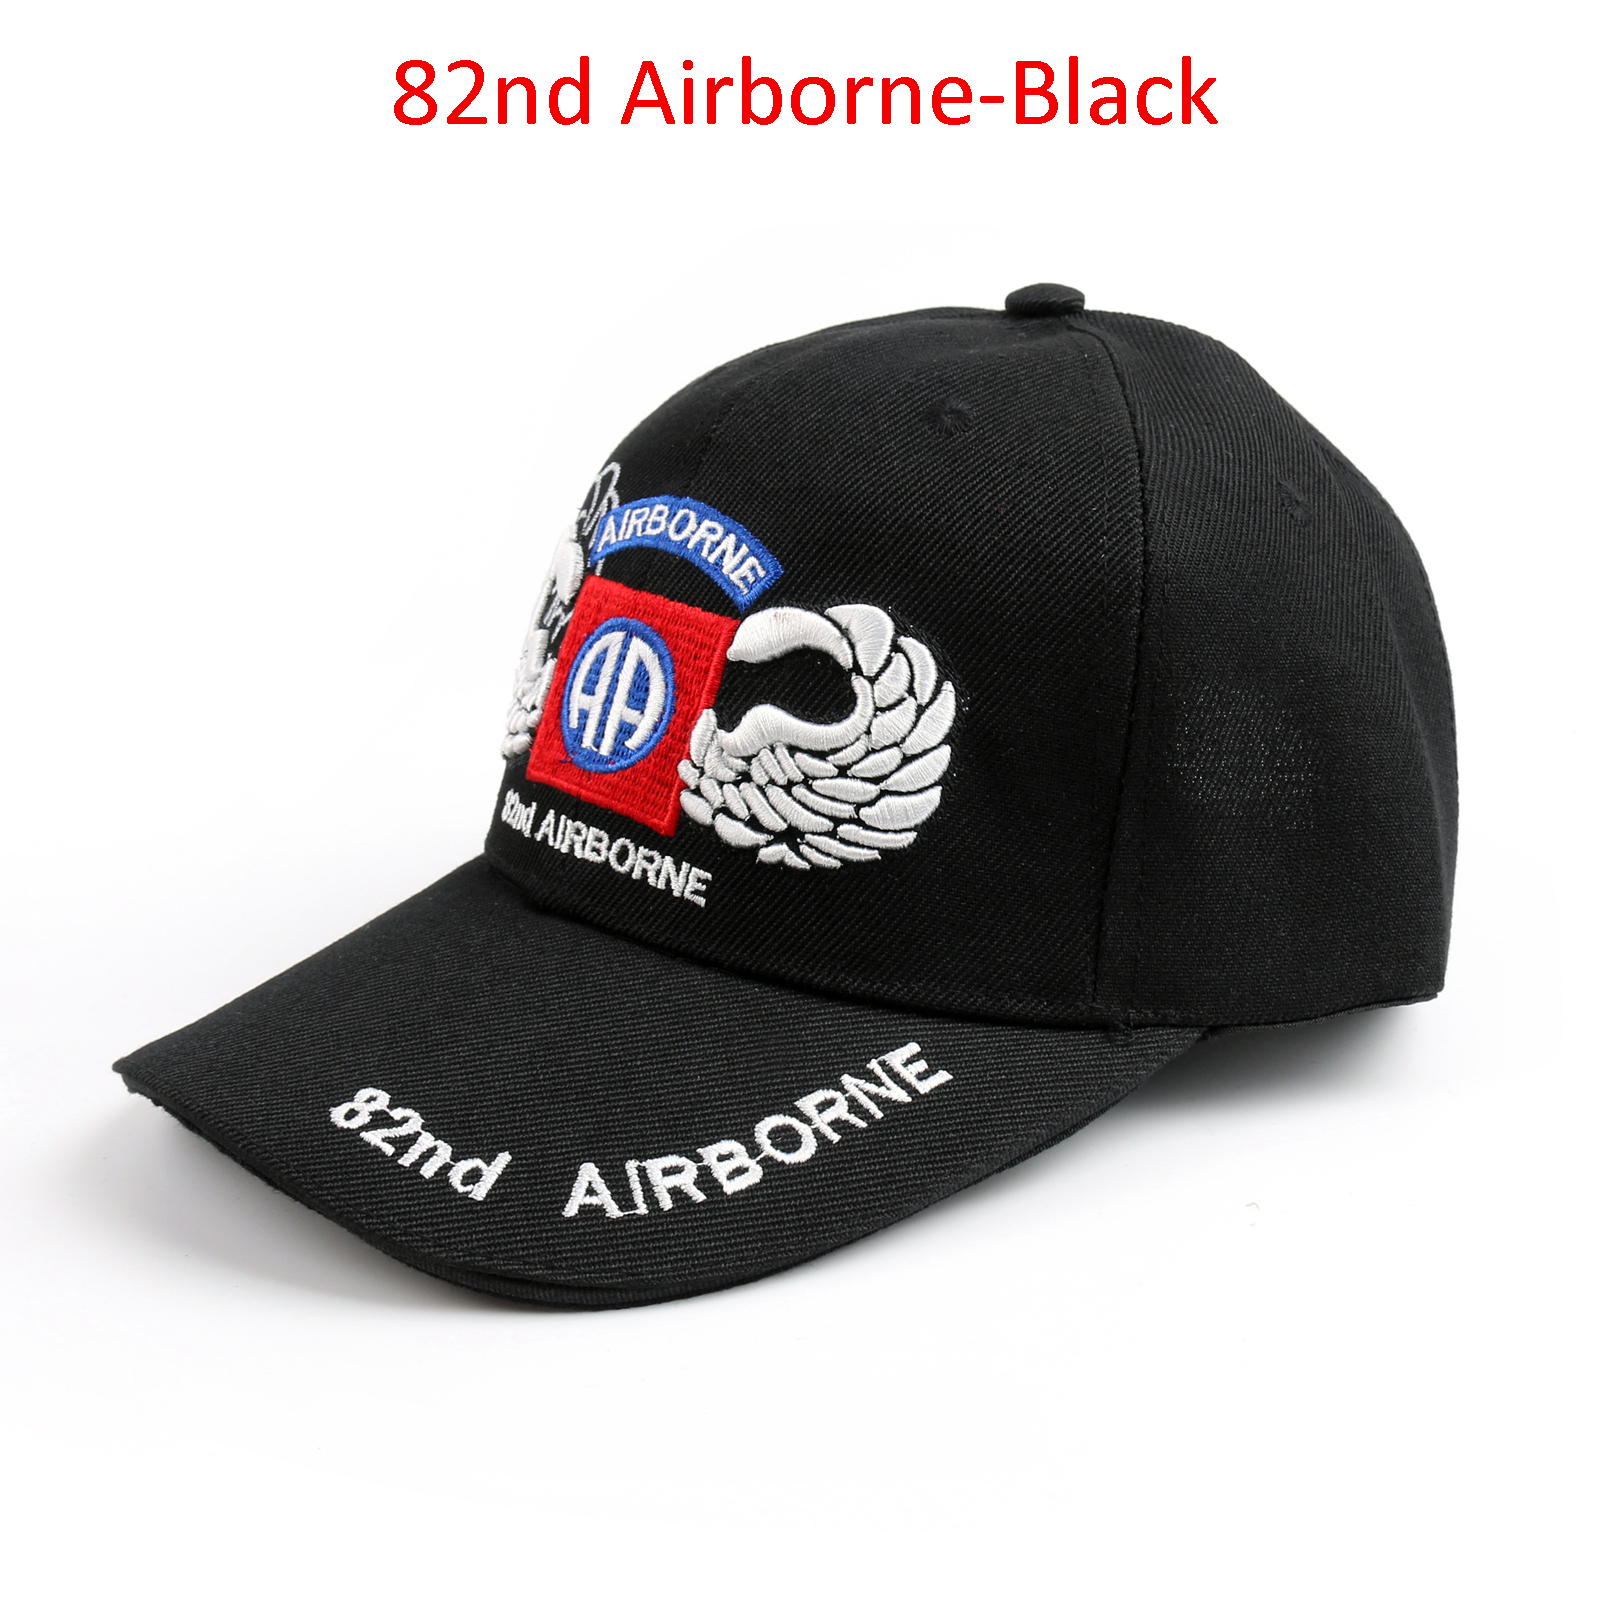 Details about United States Army 82nd Airborne Cap Silver Jump Wings Hat  Tactics Ball Hat US 954de3b225f